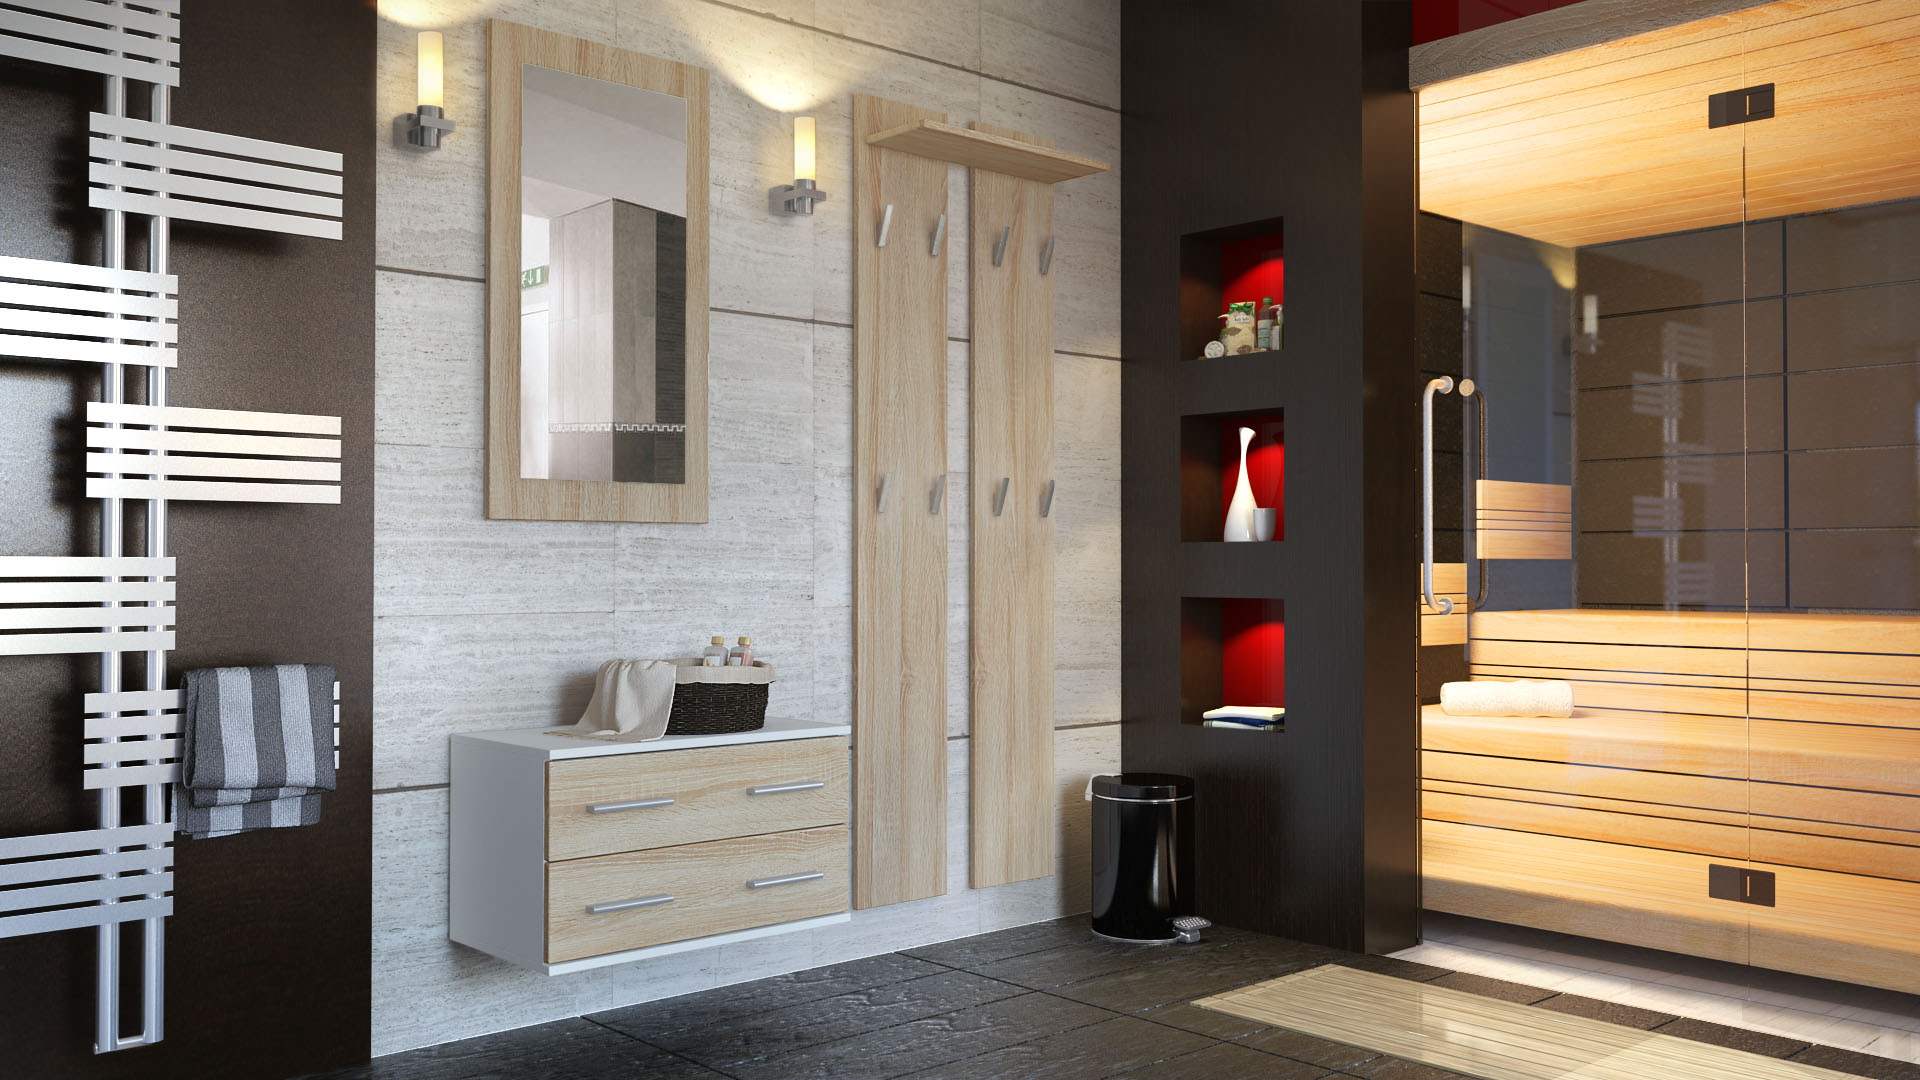 garderobenset flur garderobe diele kioto in wei hochglanz naturt ne ebay. Black Bedroom Furniture Sets. Home Design Ideas